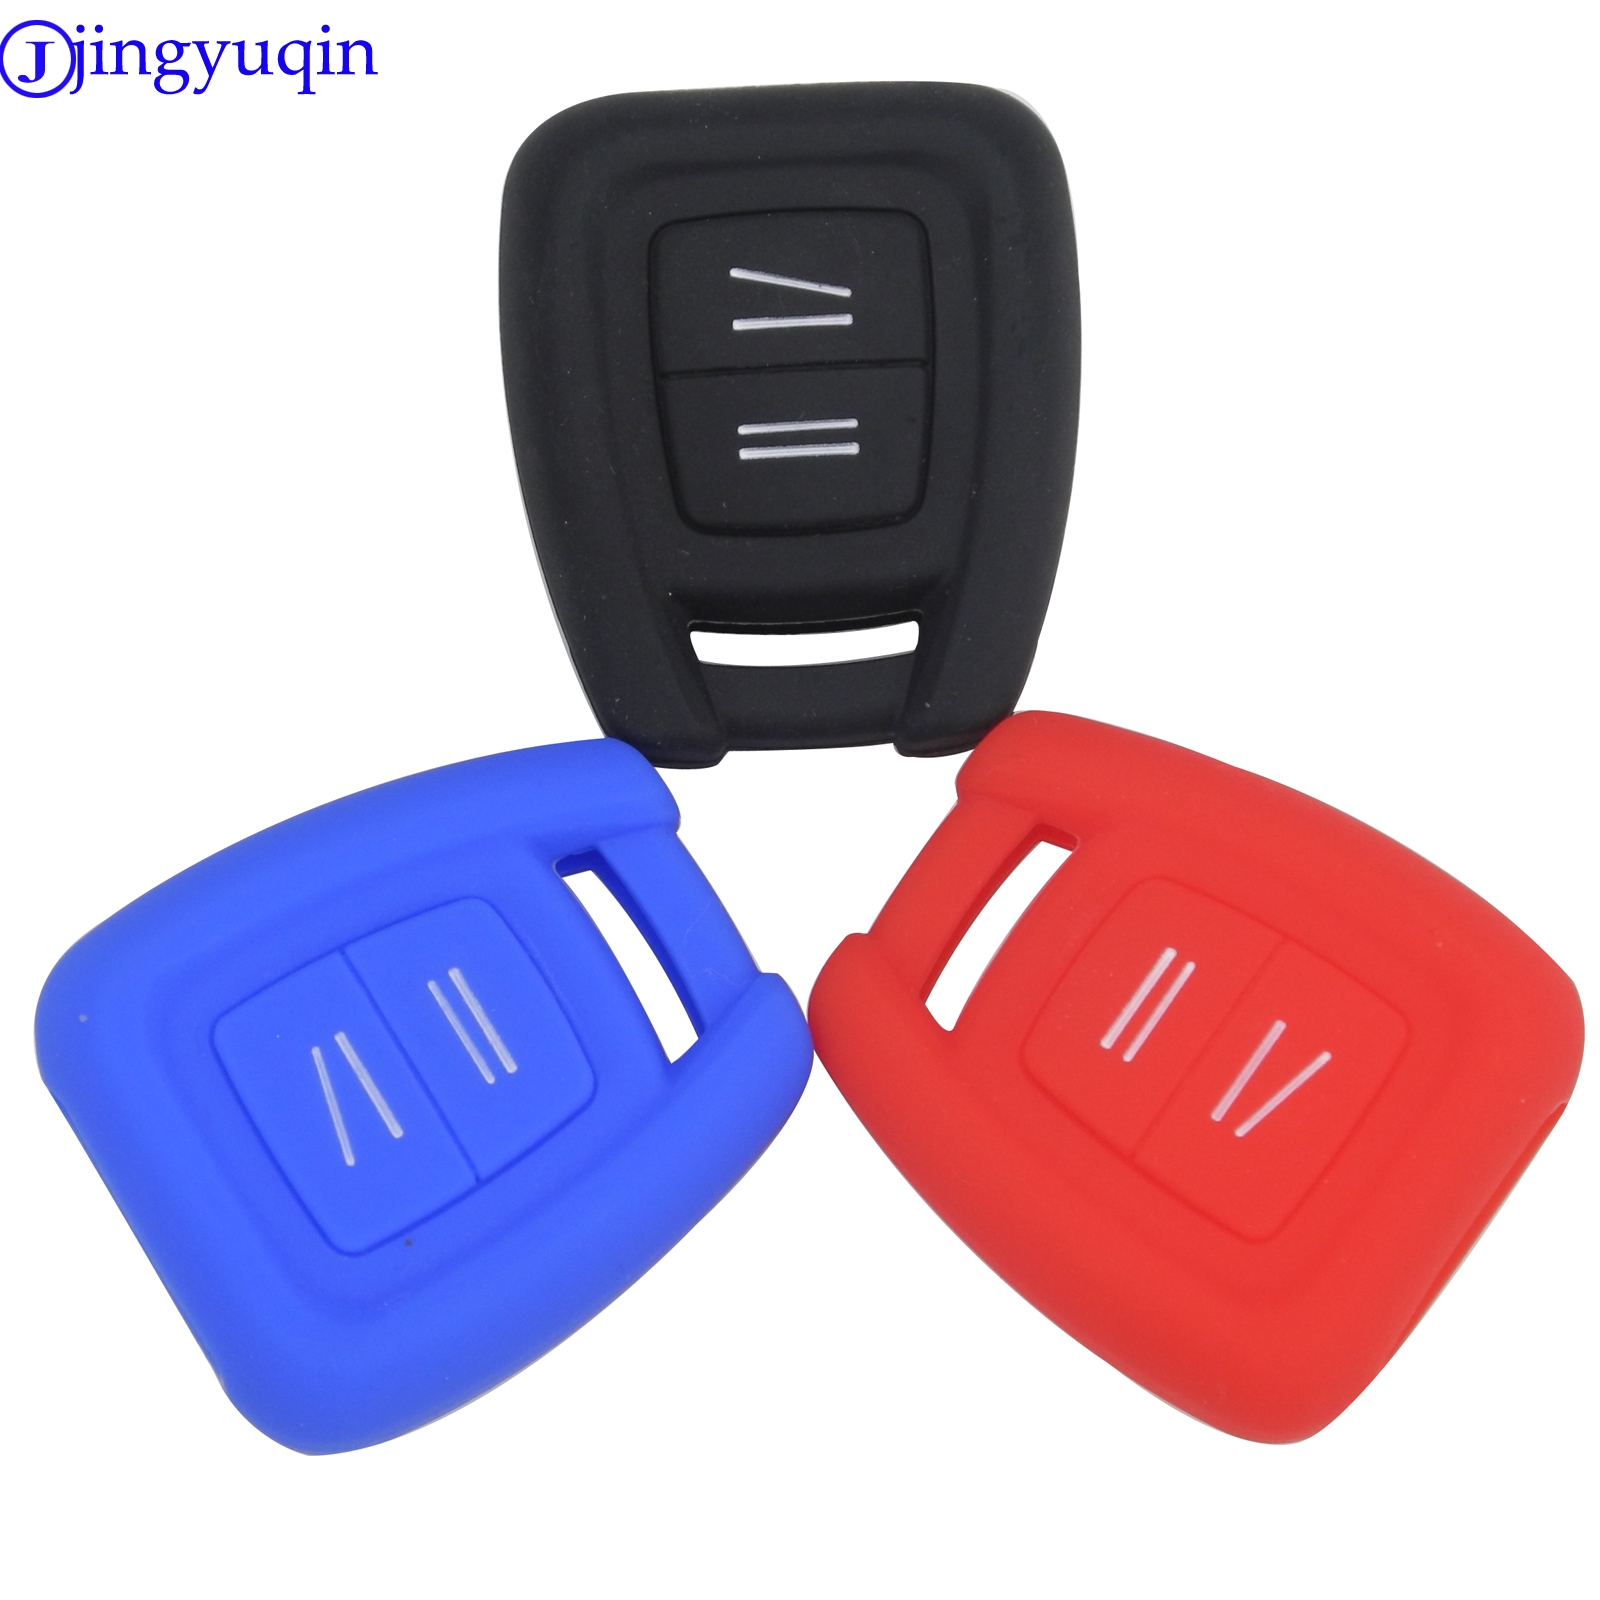 2 Button Remote Car Key Silicone Case FOB Cover For Vauxhall Opel Holden Astra Zafira Vectra Tigra Omega Signum Styling